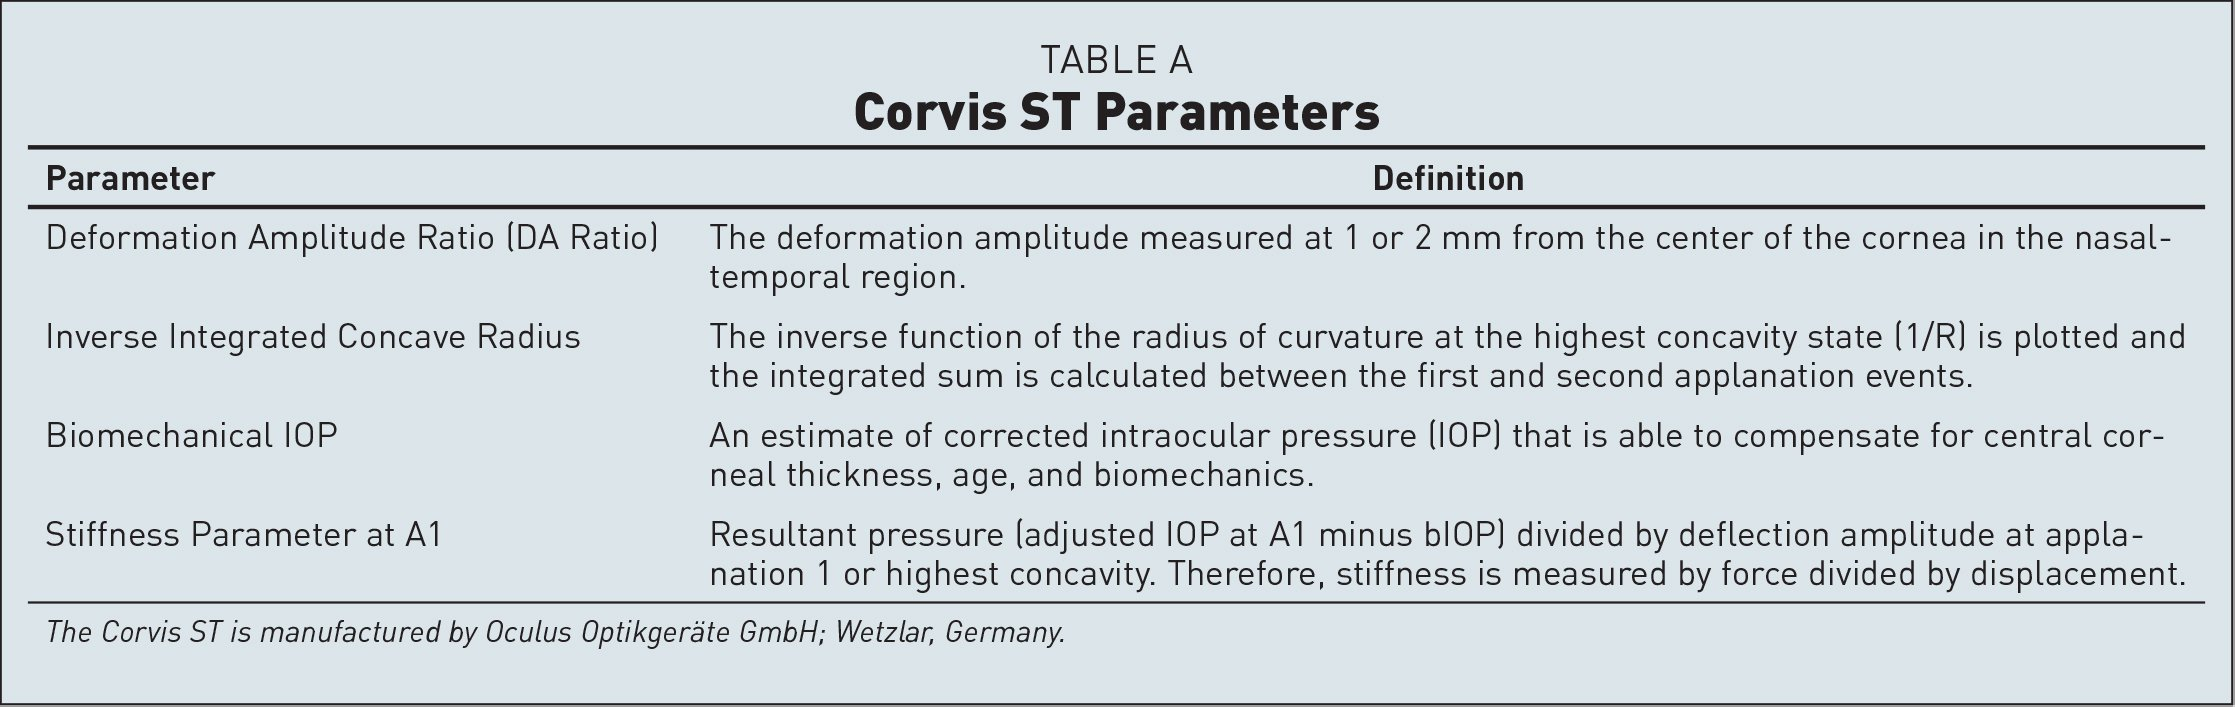 Corvis ST Parameters